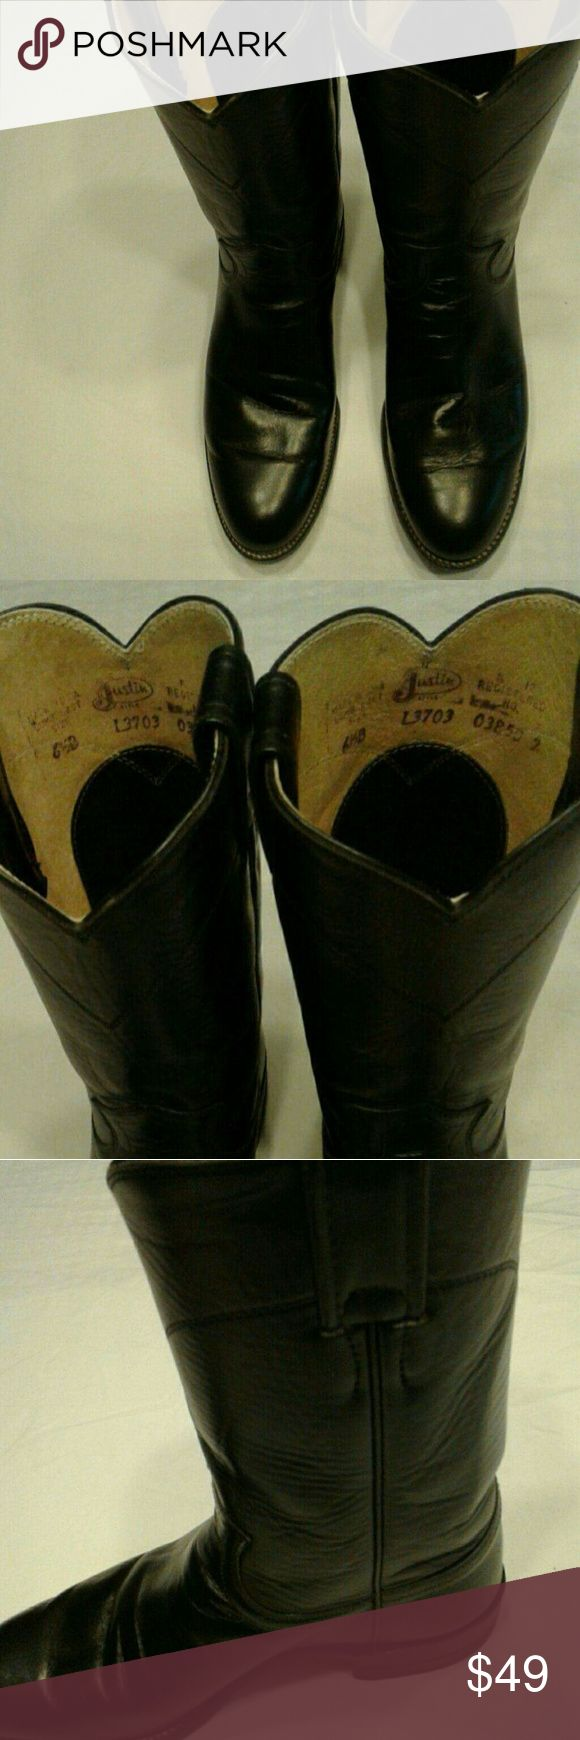 Justin Roper Black Leather Cowboy Boots Rarely worn Justin Ropers in great condition at a great price. Size 6B. If you have not worn Justin Ropers before, please note that they run at least a half size large.  While we like to take offers on most items, this item is priced FIRM.  Thank you! Justin Boots Shoes Heeled Boots